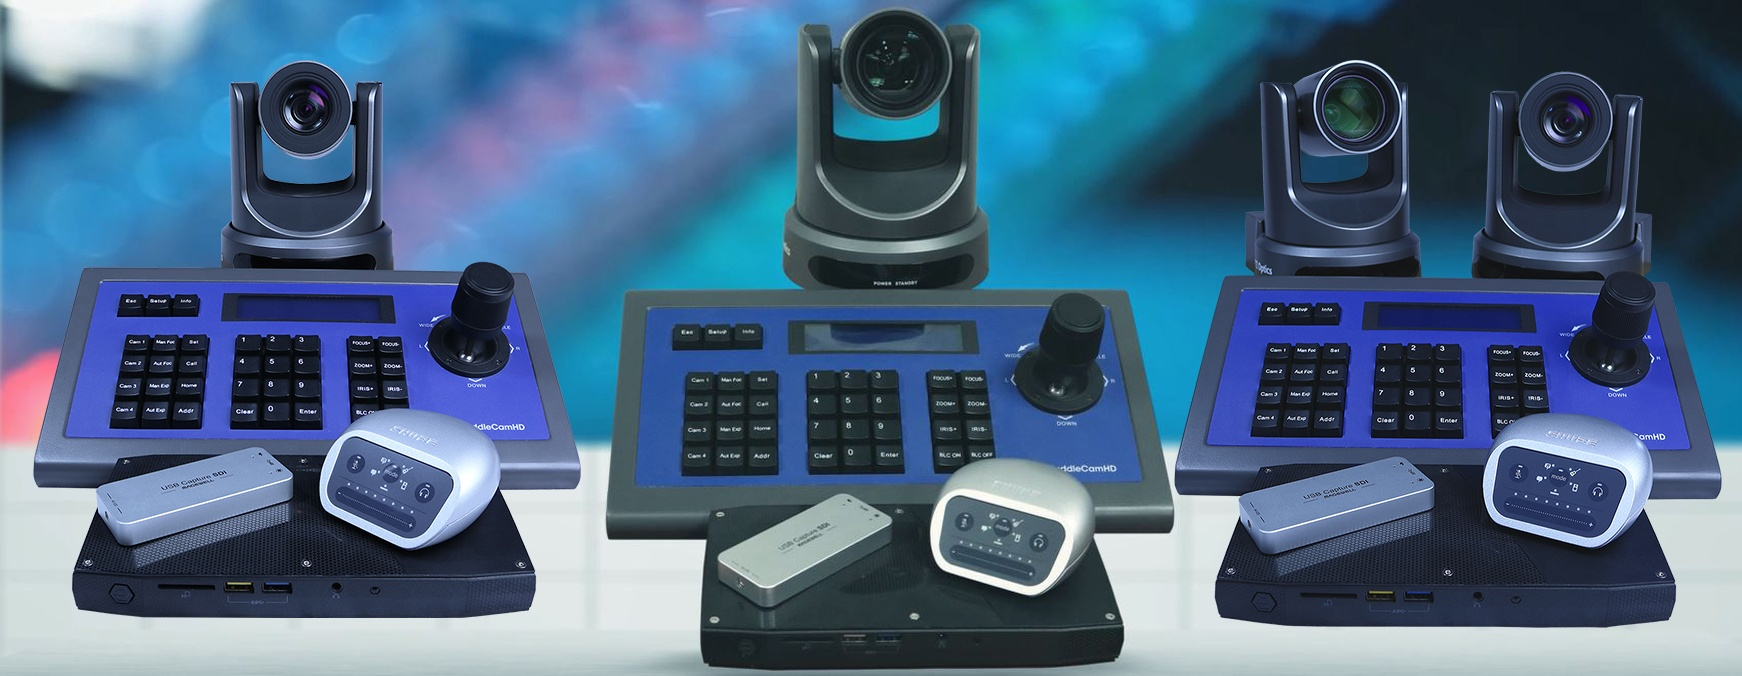 new complete systems for live streaming.jpg